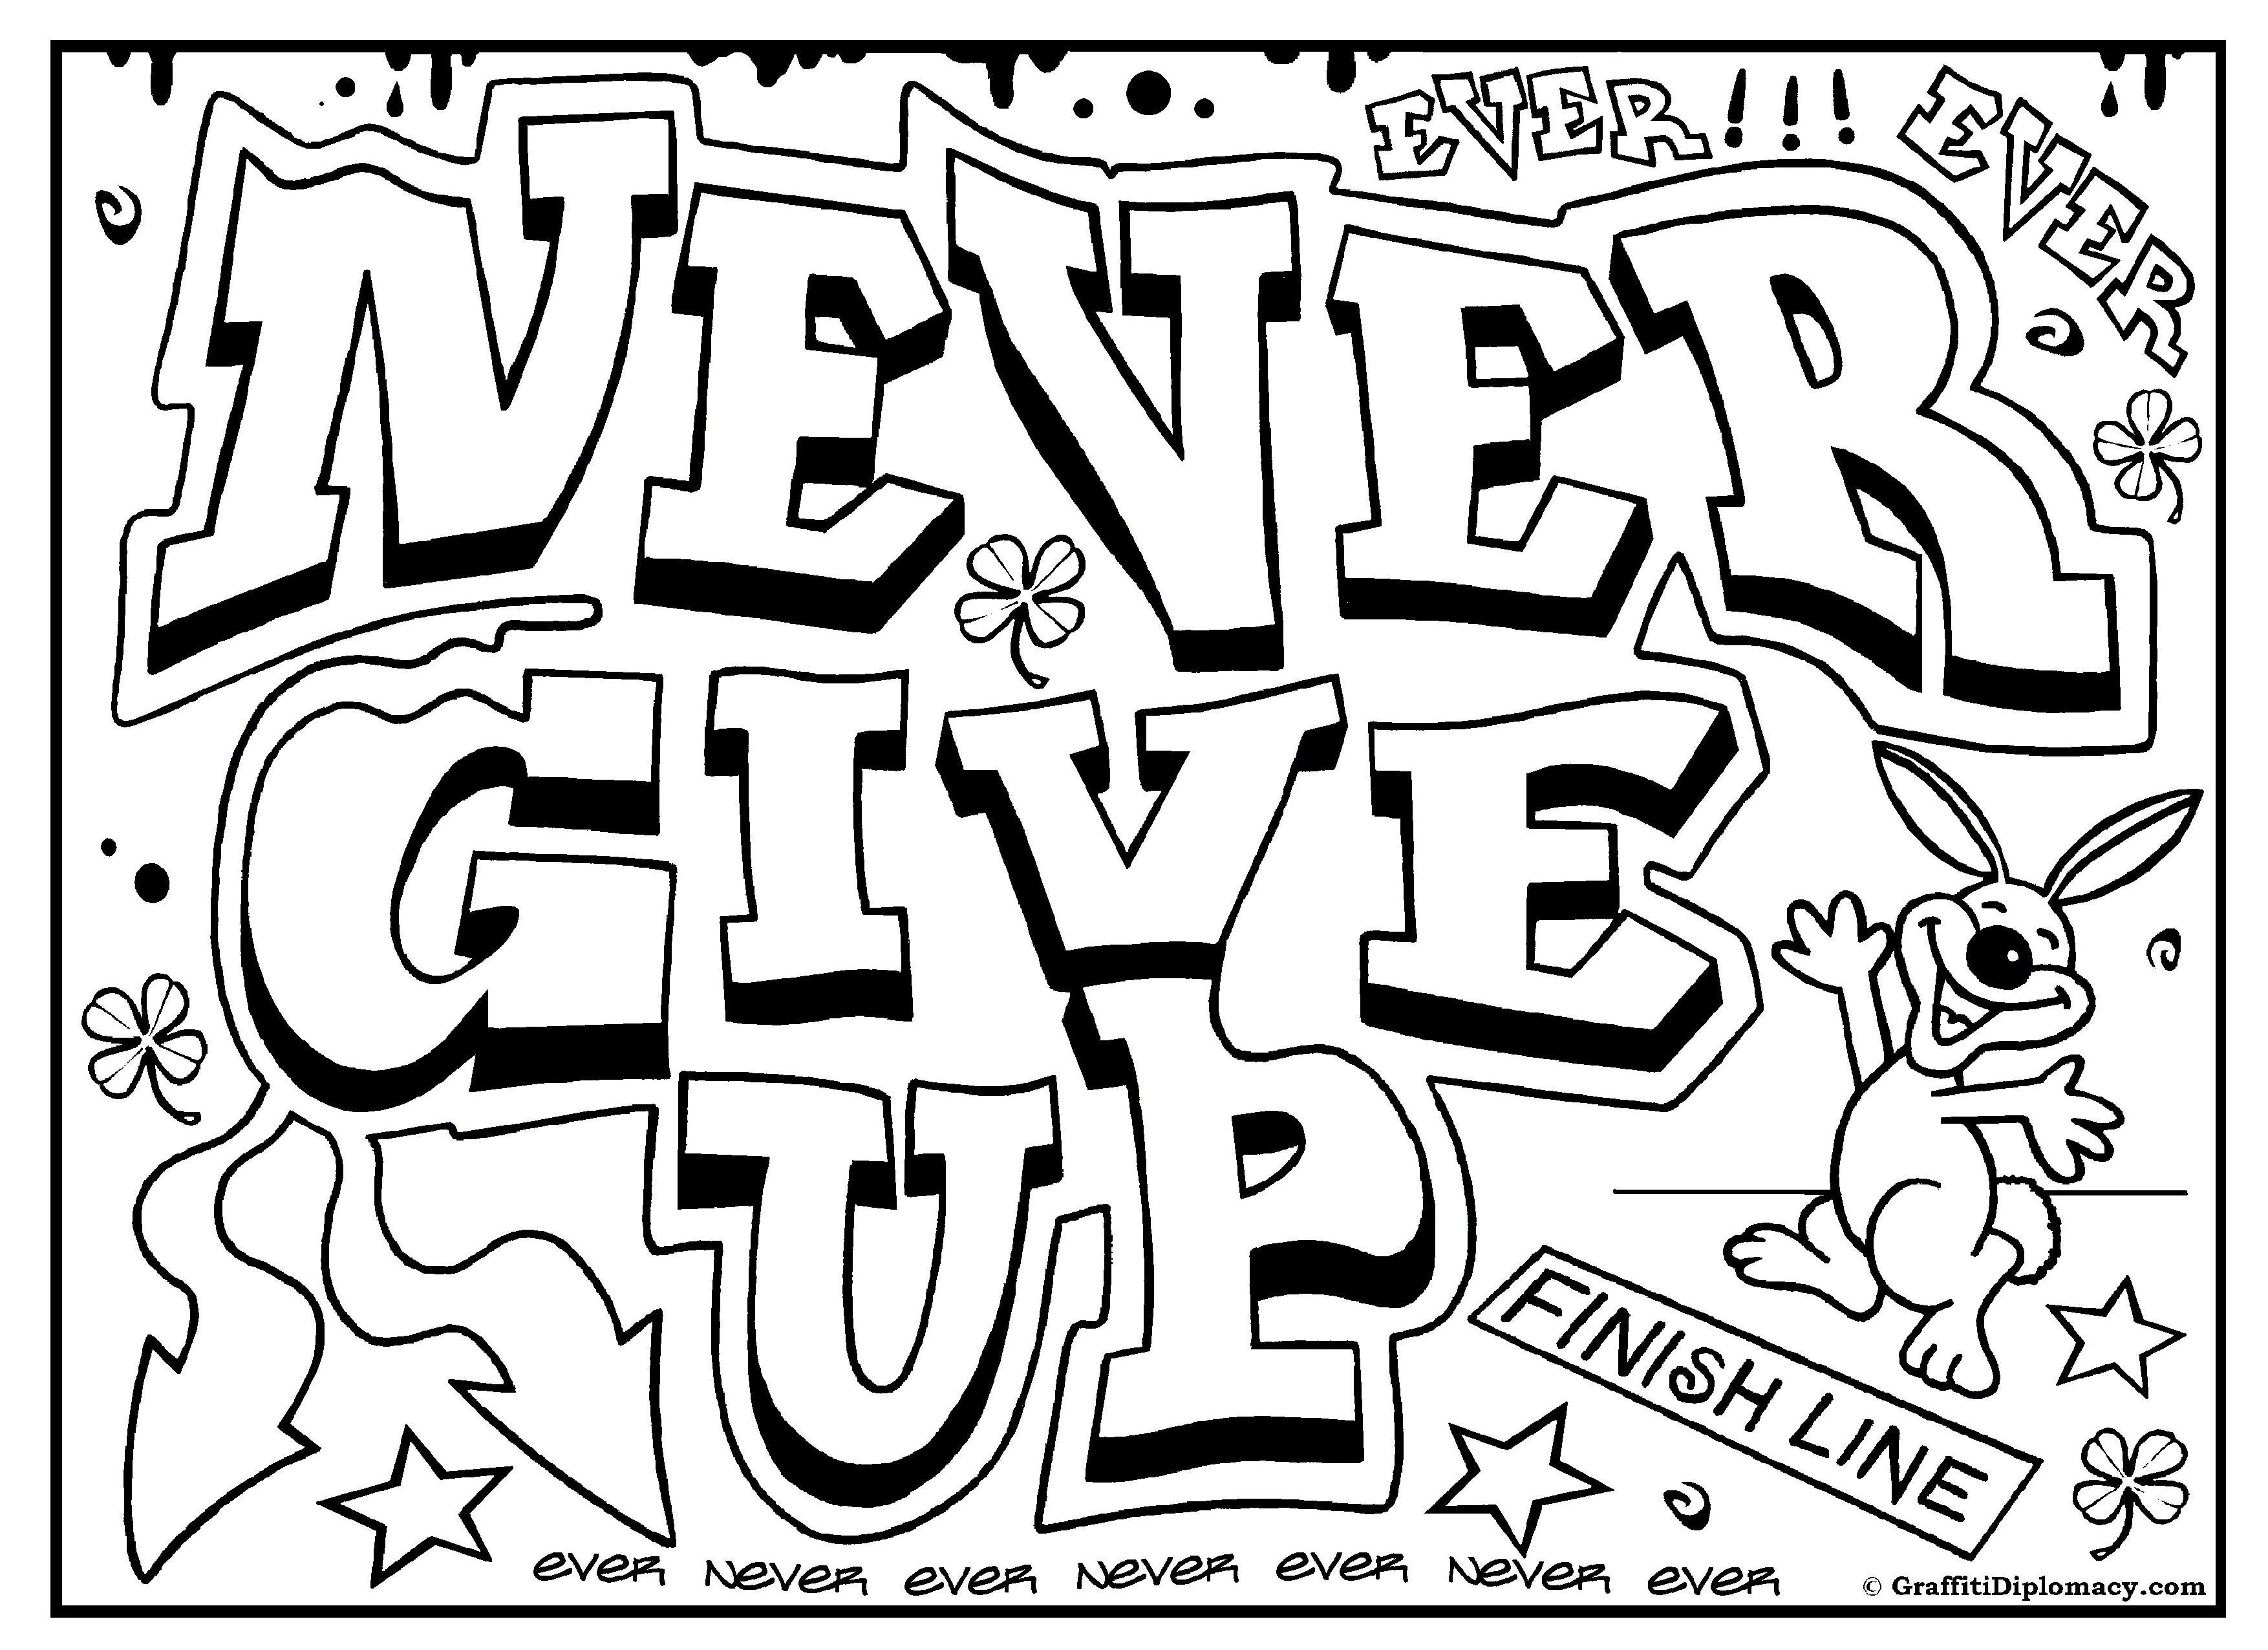 graffiti coloring pages graffiti coloring pages to download and print for free graffiti coloring pages